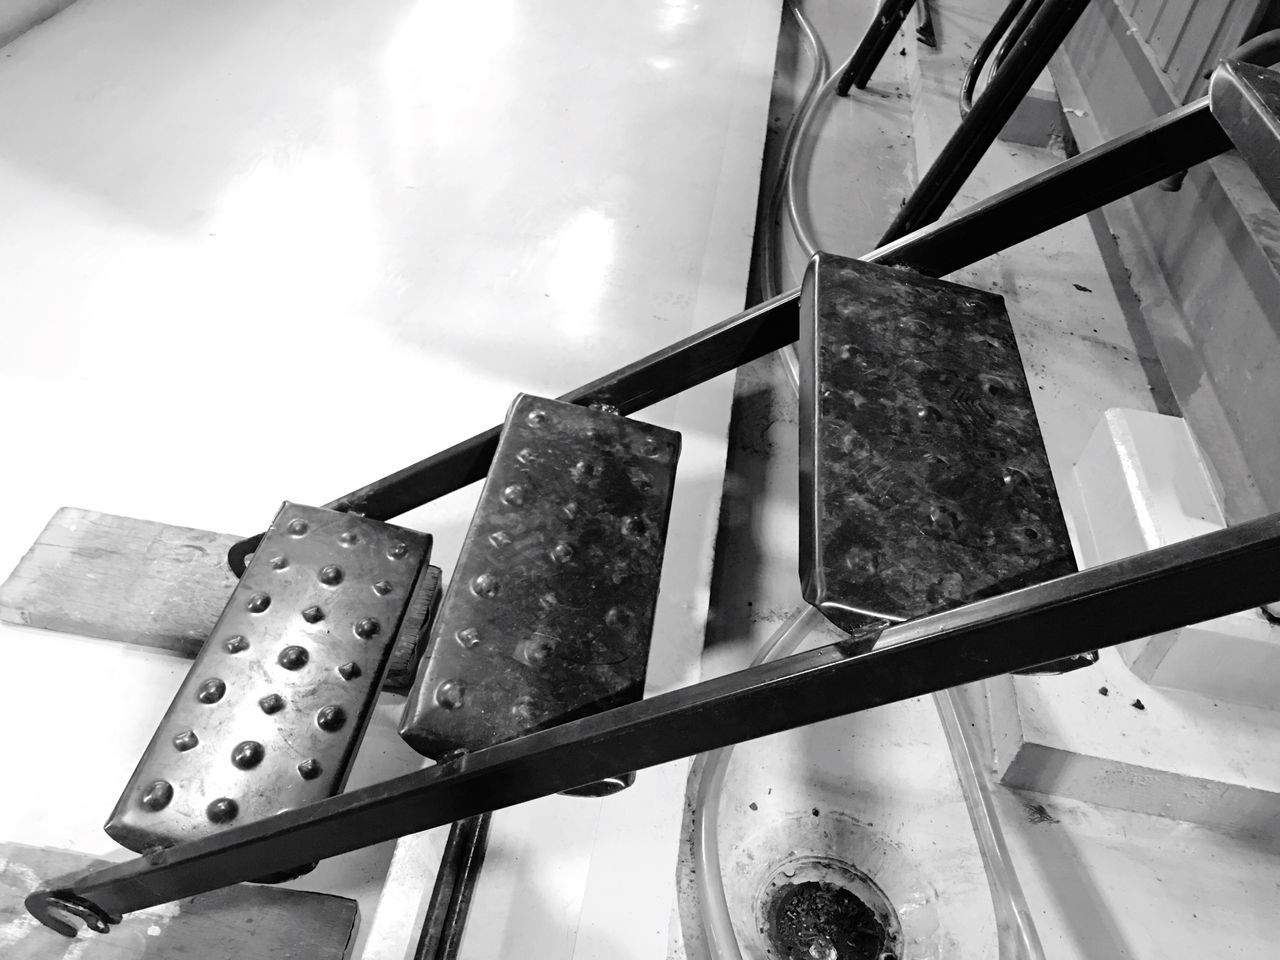 low angle view, metal, no people, day, sky, outdoors, close-up